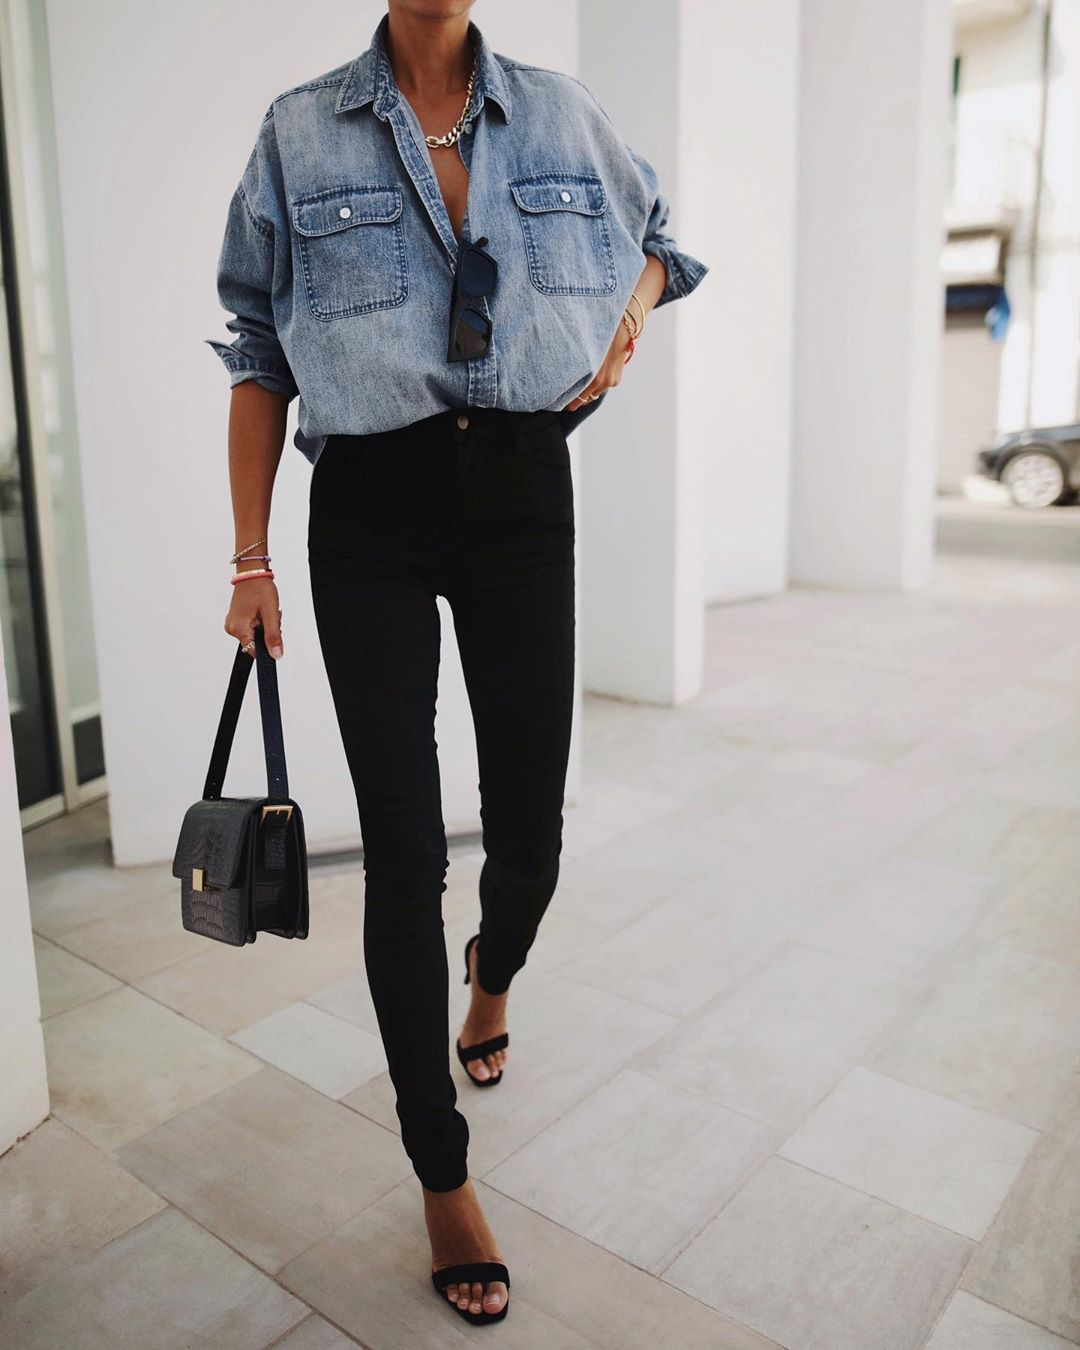 This Outfit Puts a Chic Spin on Casual Basics